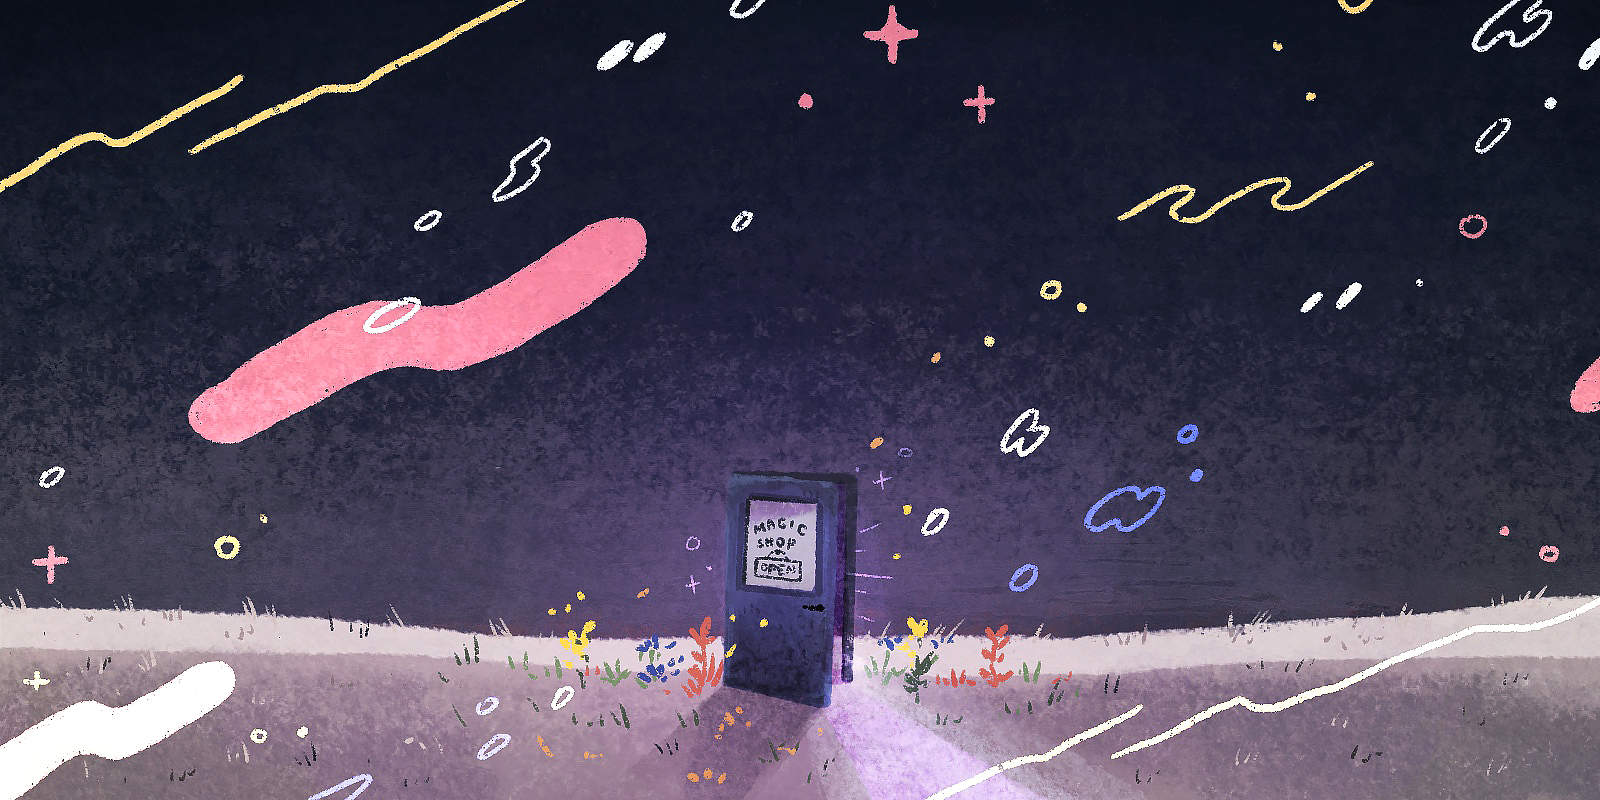 A purple door to the Magic Shop sits cracked open in a moonlit field of flowers